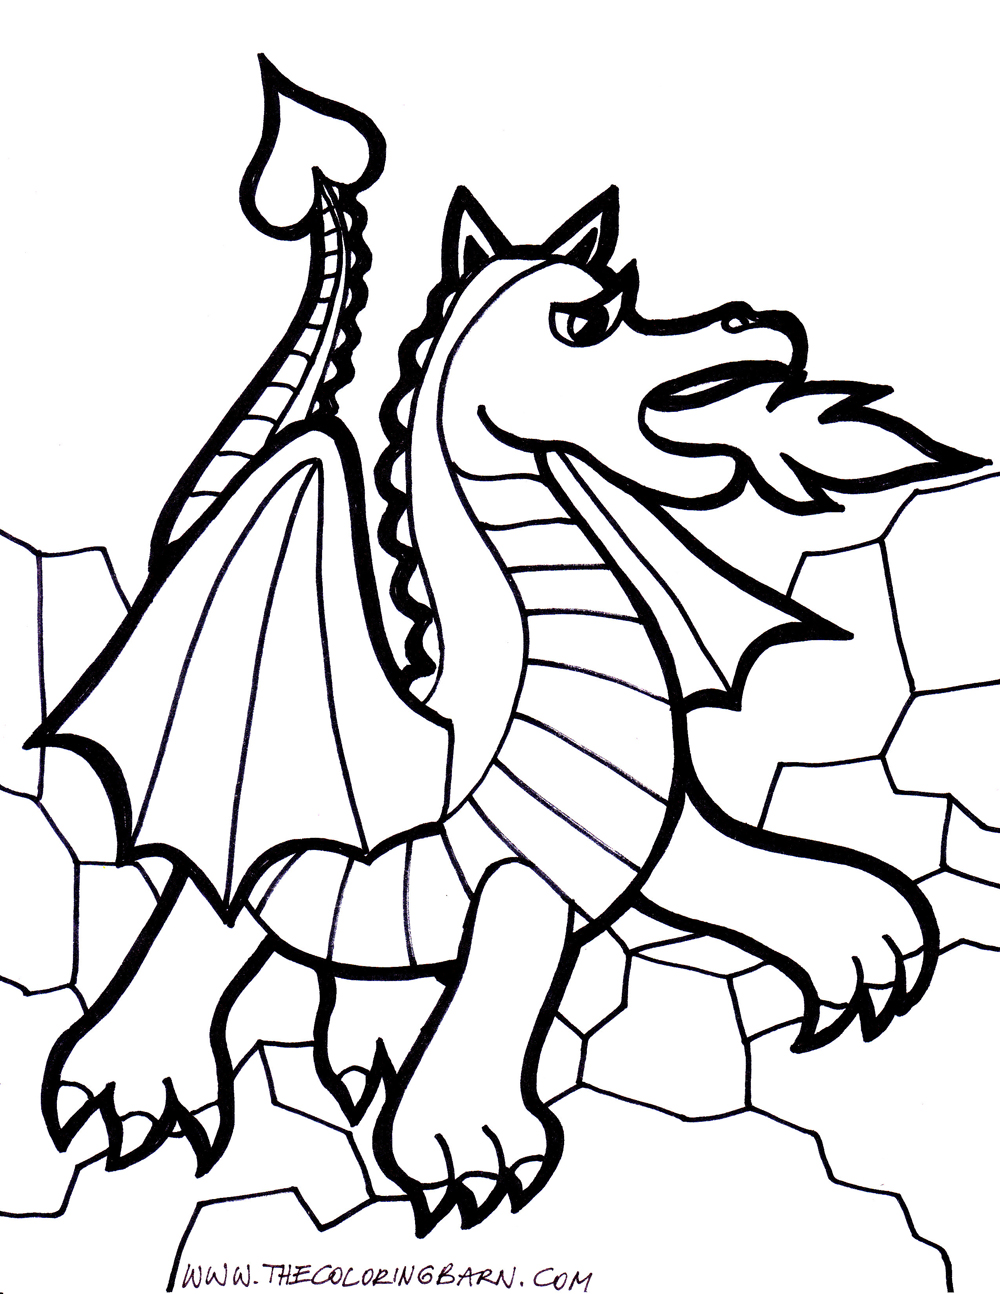 cartoon dragon coloring pages download and print for free - Dragon Coloring Page